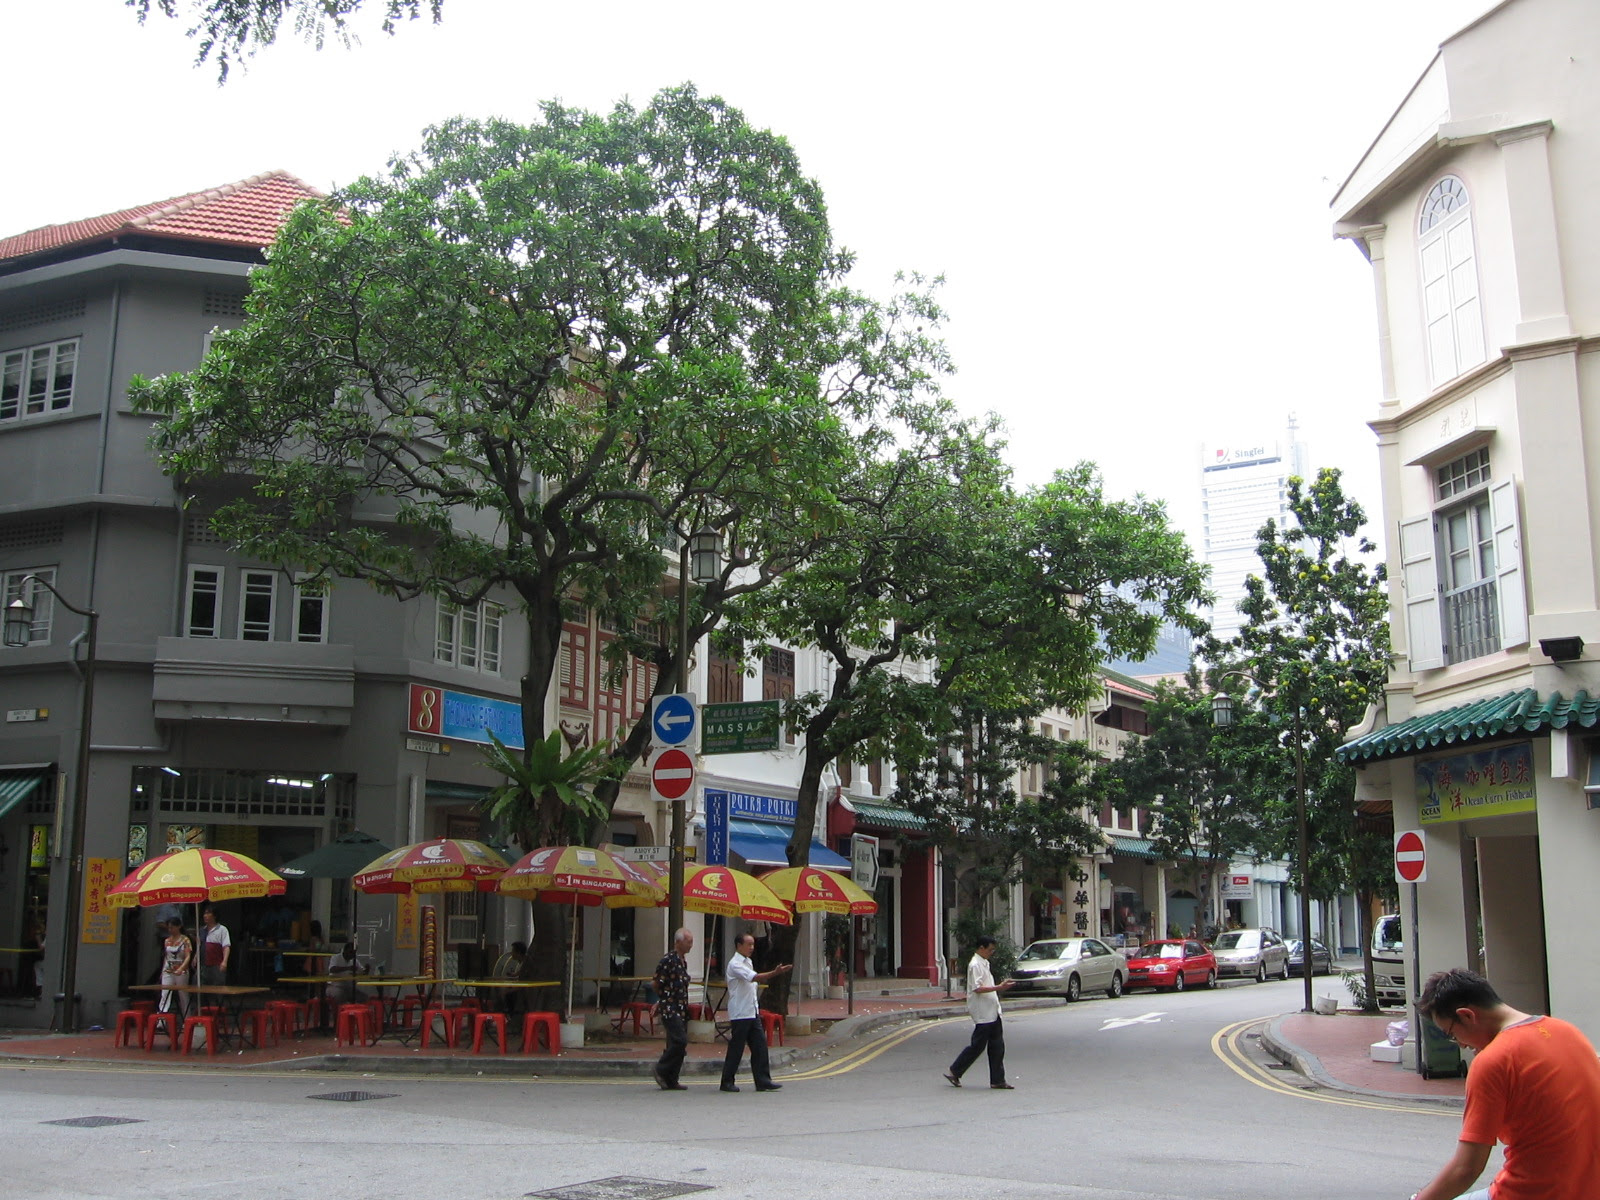 Telok Ayer Street Singapore Map,Map of Telok Ayer Street Singapore,Tourist Attractions in Singapore,Things to do in Singapore,Telok Ayer Street Singapore accommodation destinations attractions hotels map reviews photos pictures